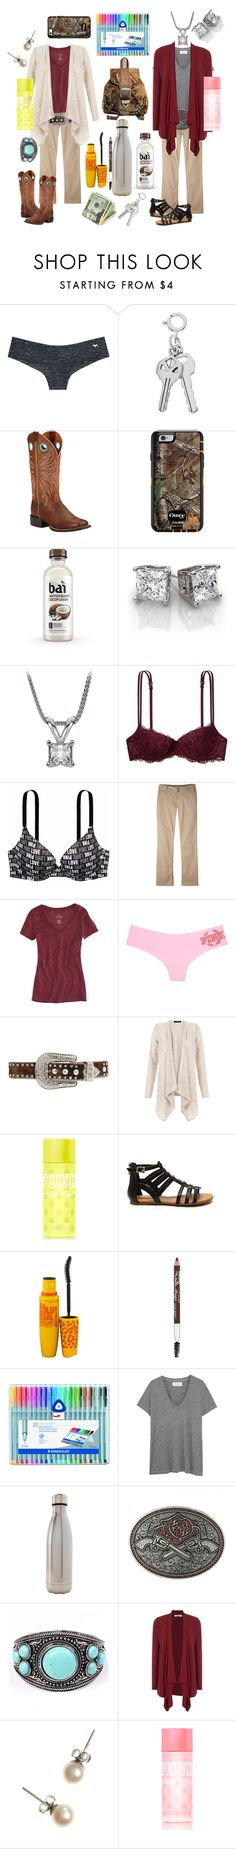 """""""Dressy school outfits"""" by pistols-n-pearls ❤ liked on Polyvore featuring Victoria's Secret PINK, Ariat, Mountain Khakis, American Eagle Outfitters, Nocona, Victoria's Secret, Maybelline, The Great, S'well and Brakeburn"""